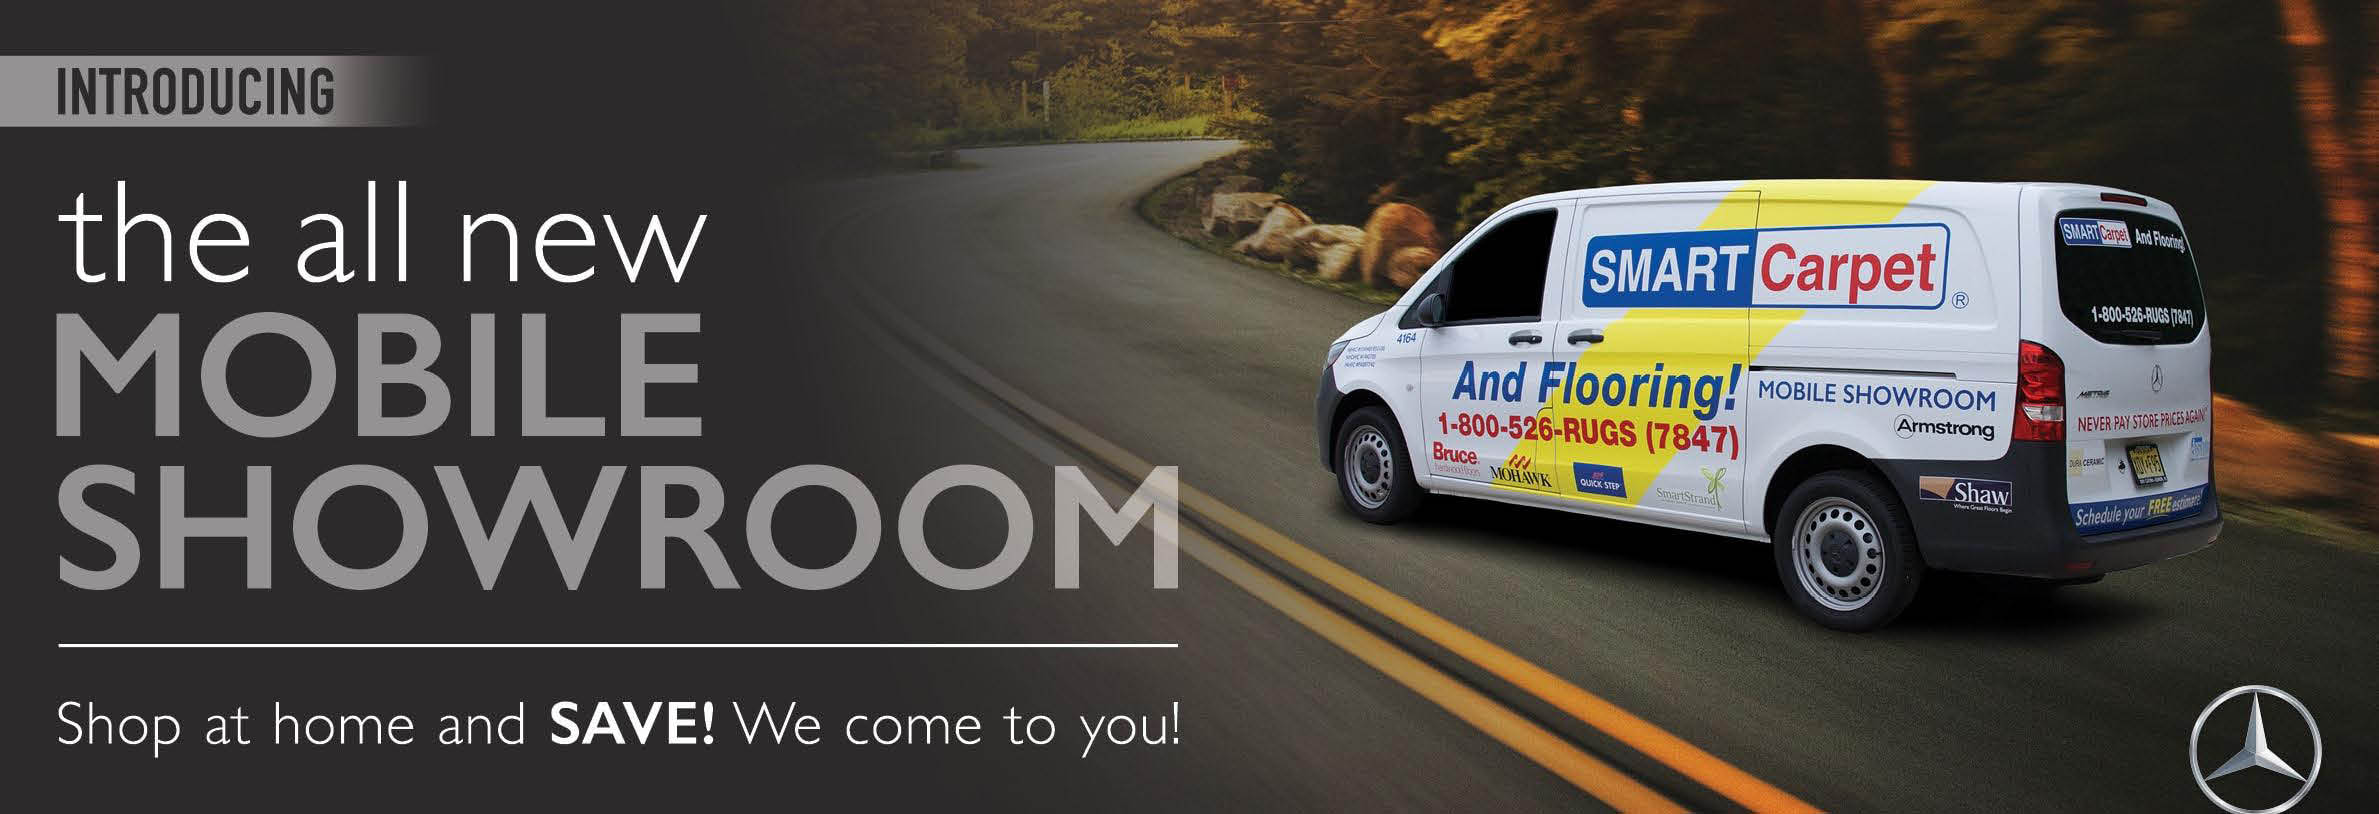 The Smart Carpet and Flooring Mobile Showroom van, where we come to your home